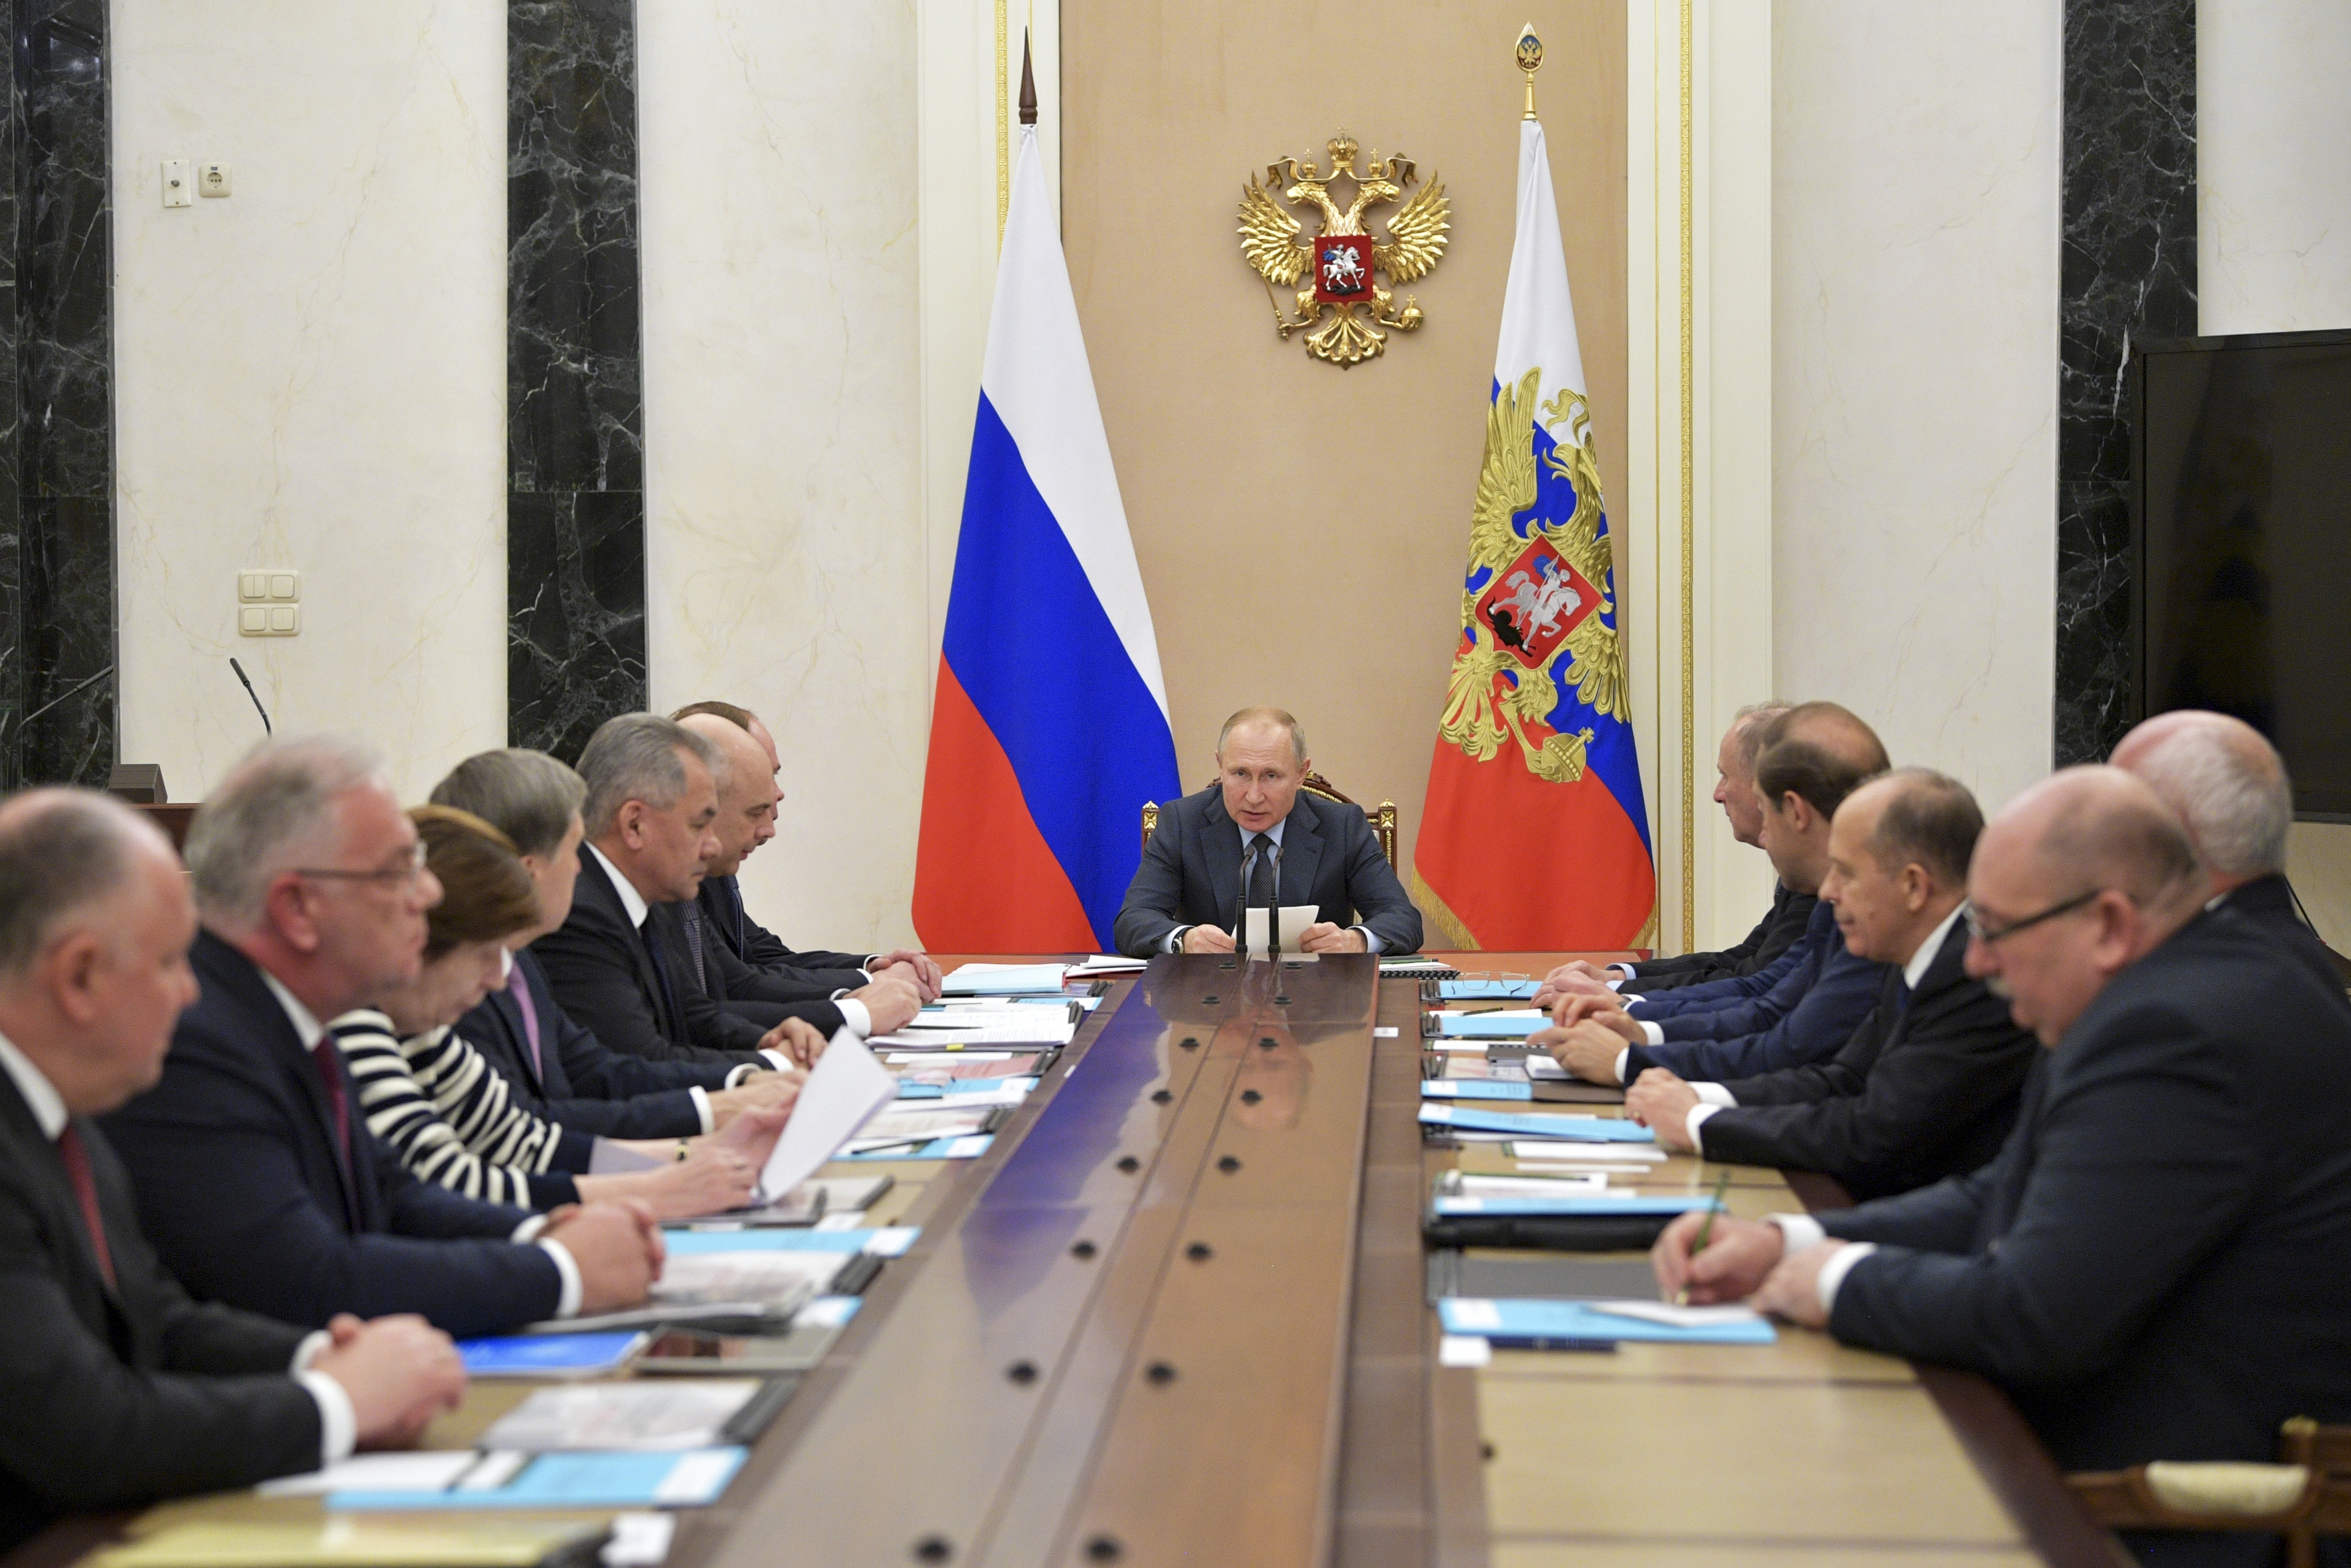 Putin hails Russian arms sales abroad